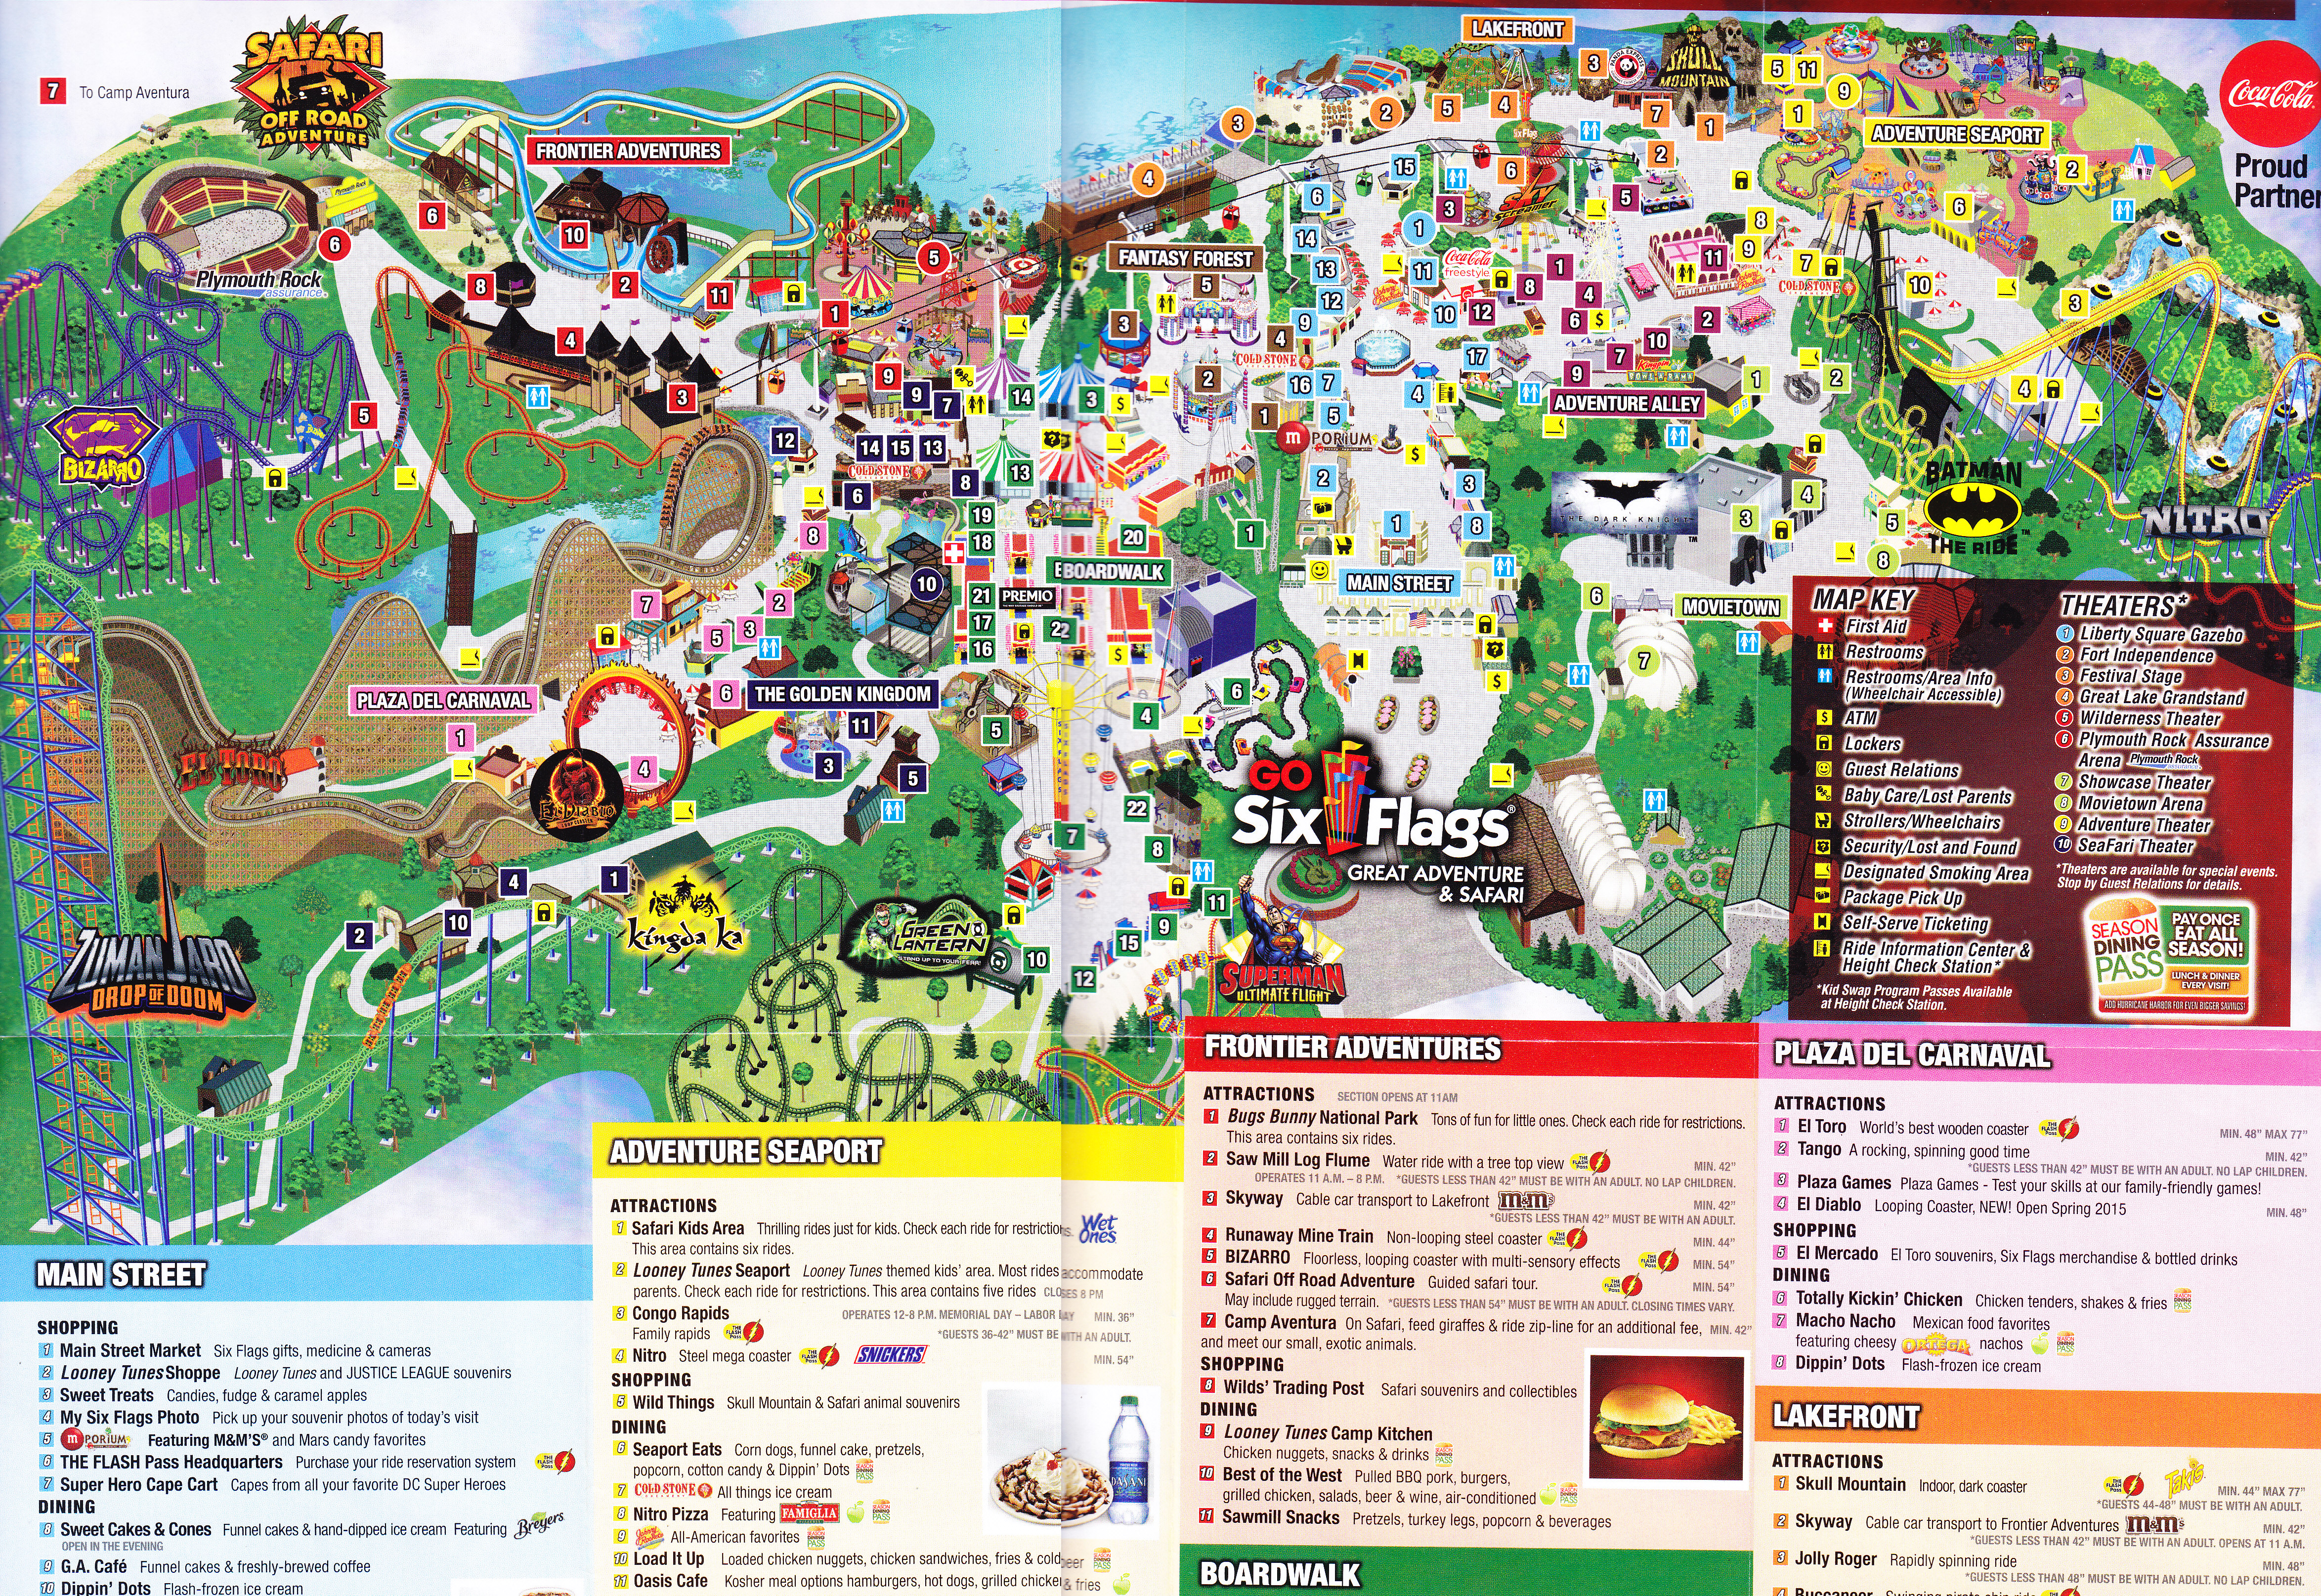 Six flags great adventure 2015 park map photo by larrygator gumiabroncs Images